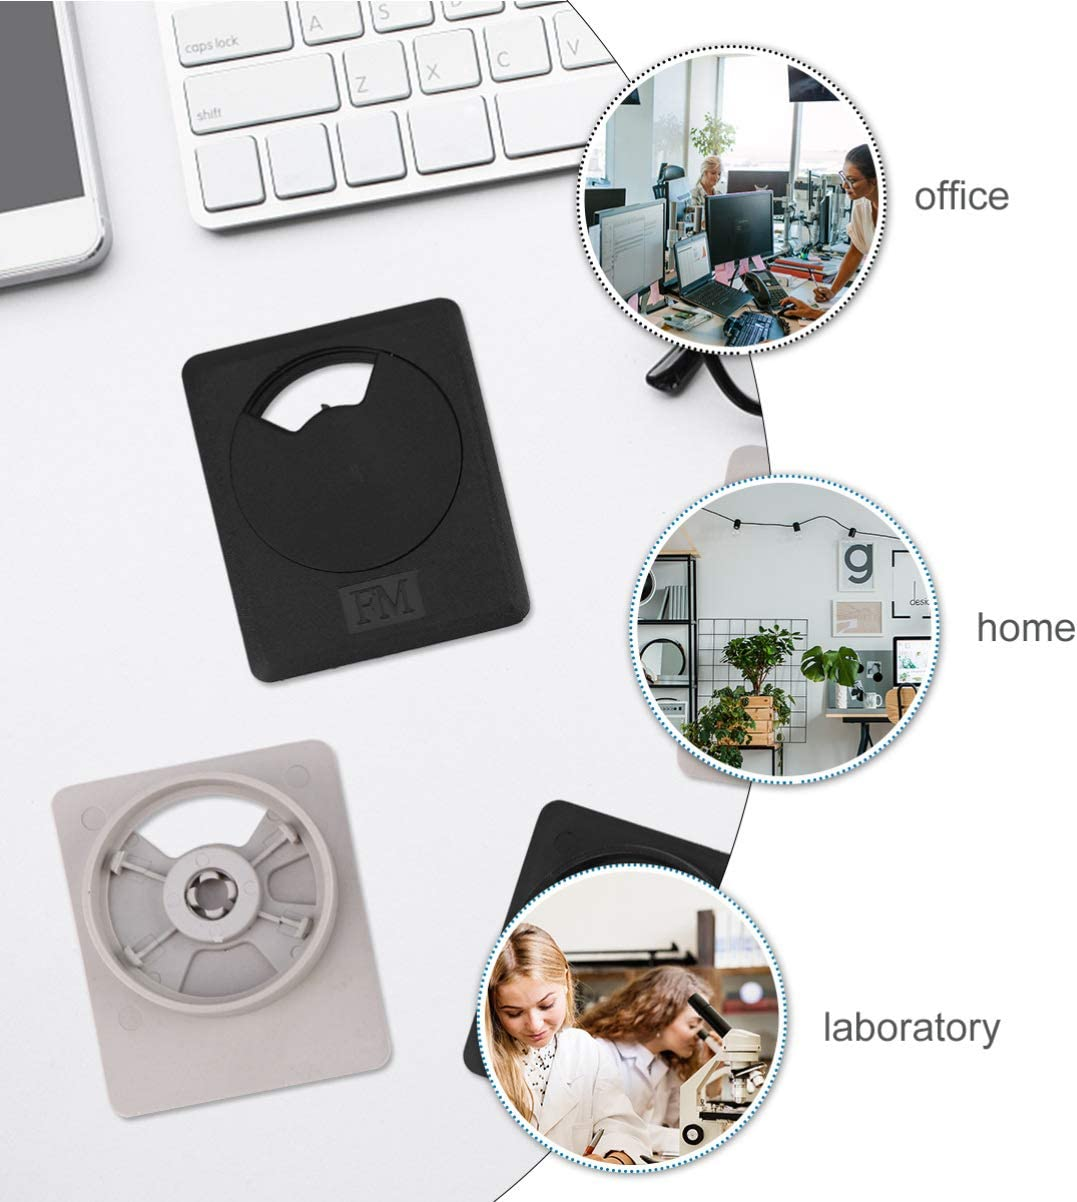 ULTECHNOVO 20pcs Desk Cable Wire Grommets Cord Covers Plastic Plastic Wire Organizers Desk Grommets for Computer Wire Organizer for Home Office Black Gray and White